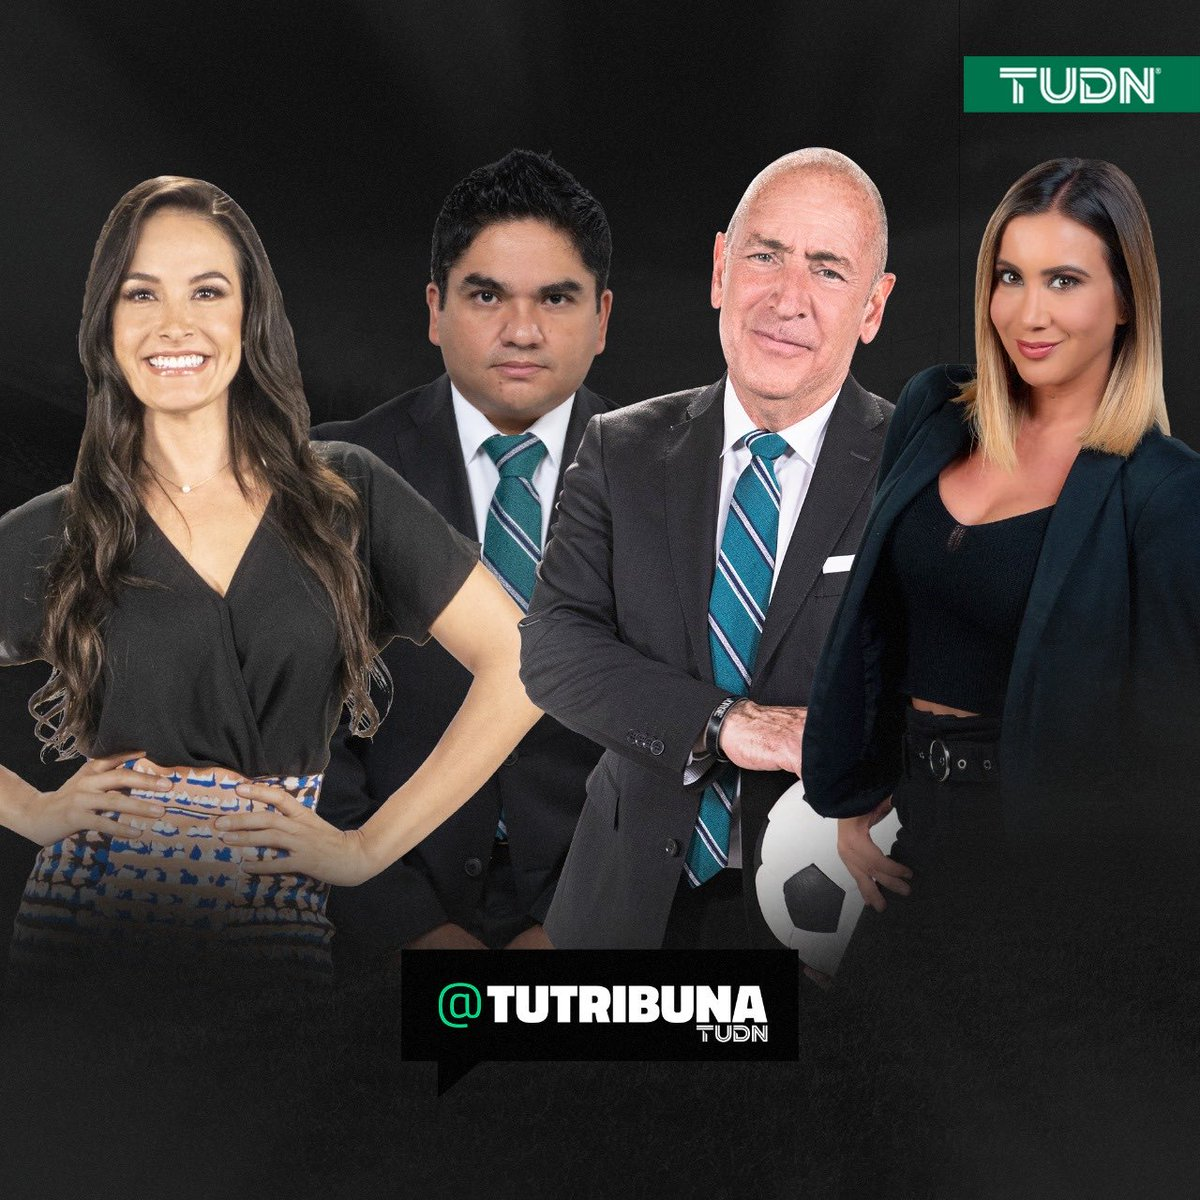 Hoy en @Tribuna_TUDN   🤩@Mariazelzel  😎@GeorginaHolguin ☺️@fersillo22  🙂 #Chiva  ⏰8pm🇲🇽 https://t.co/GcZPLuE66w